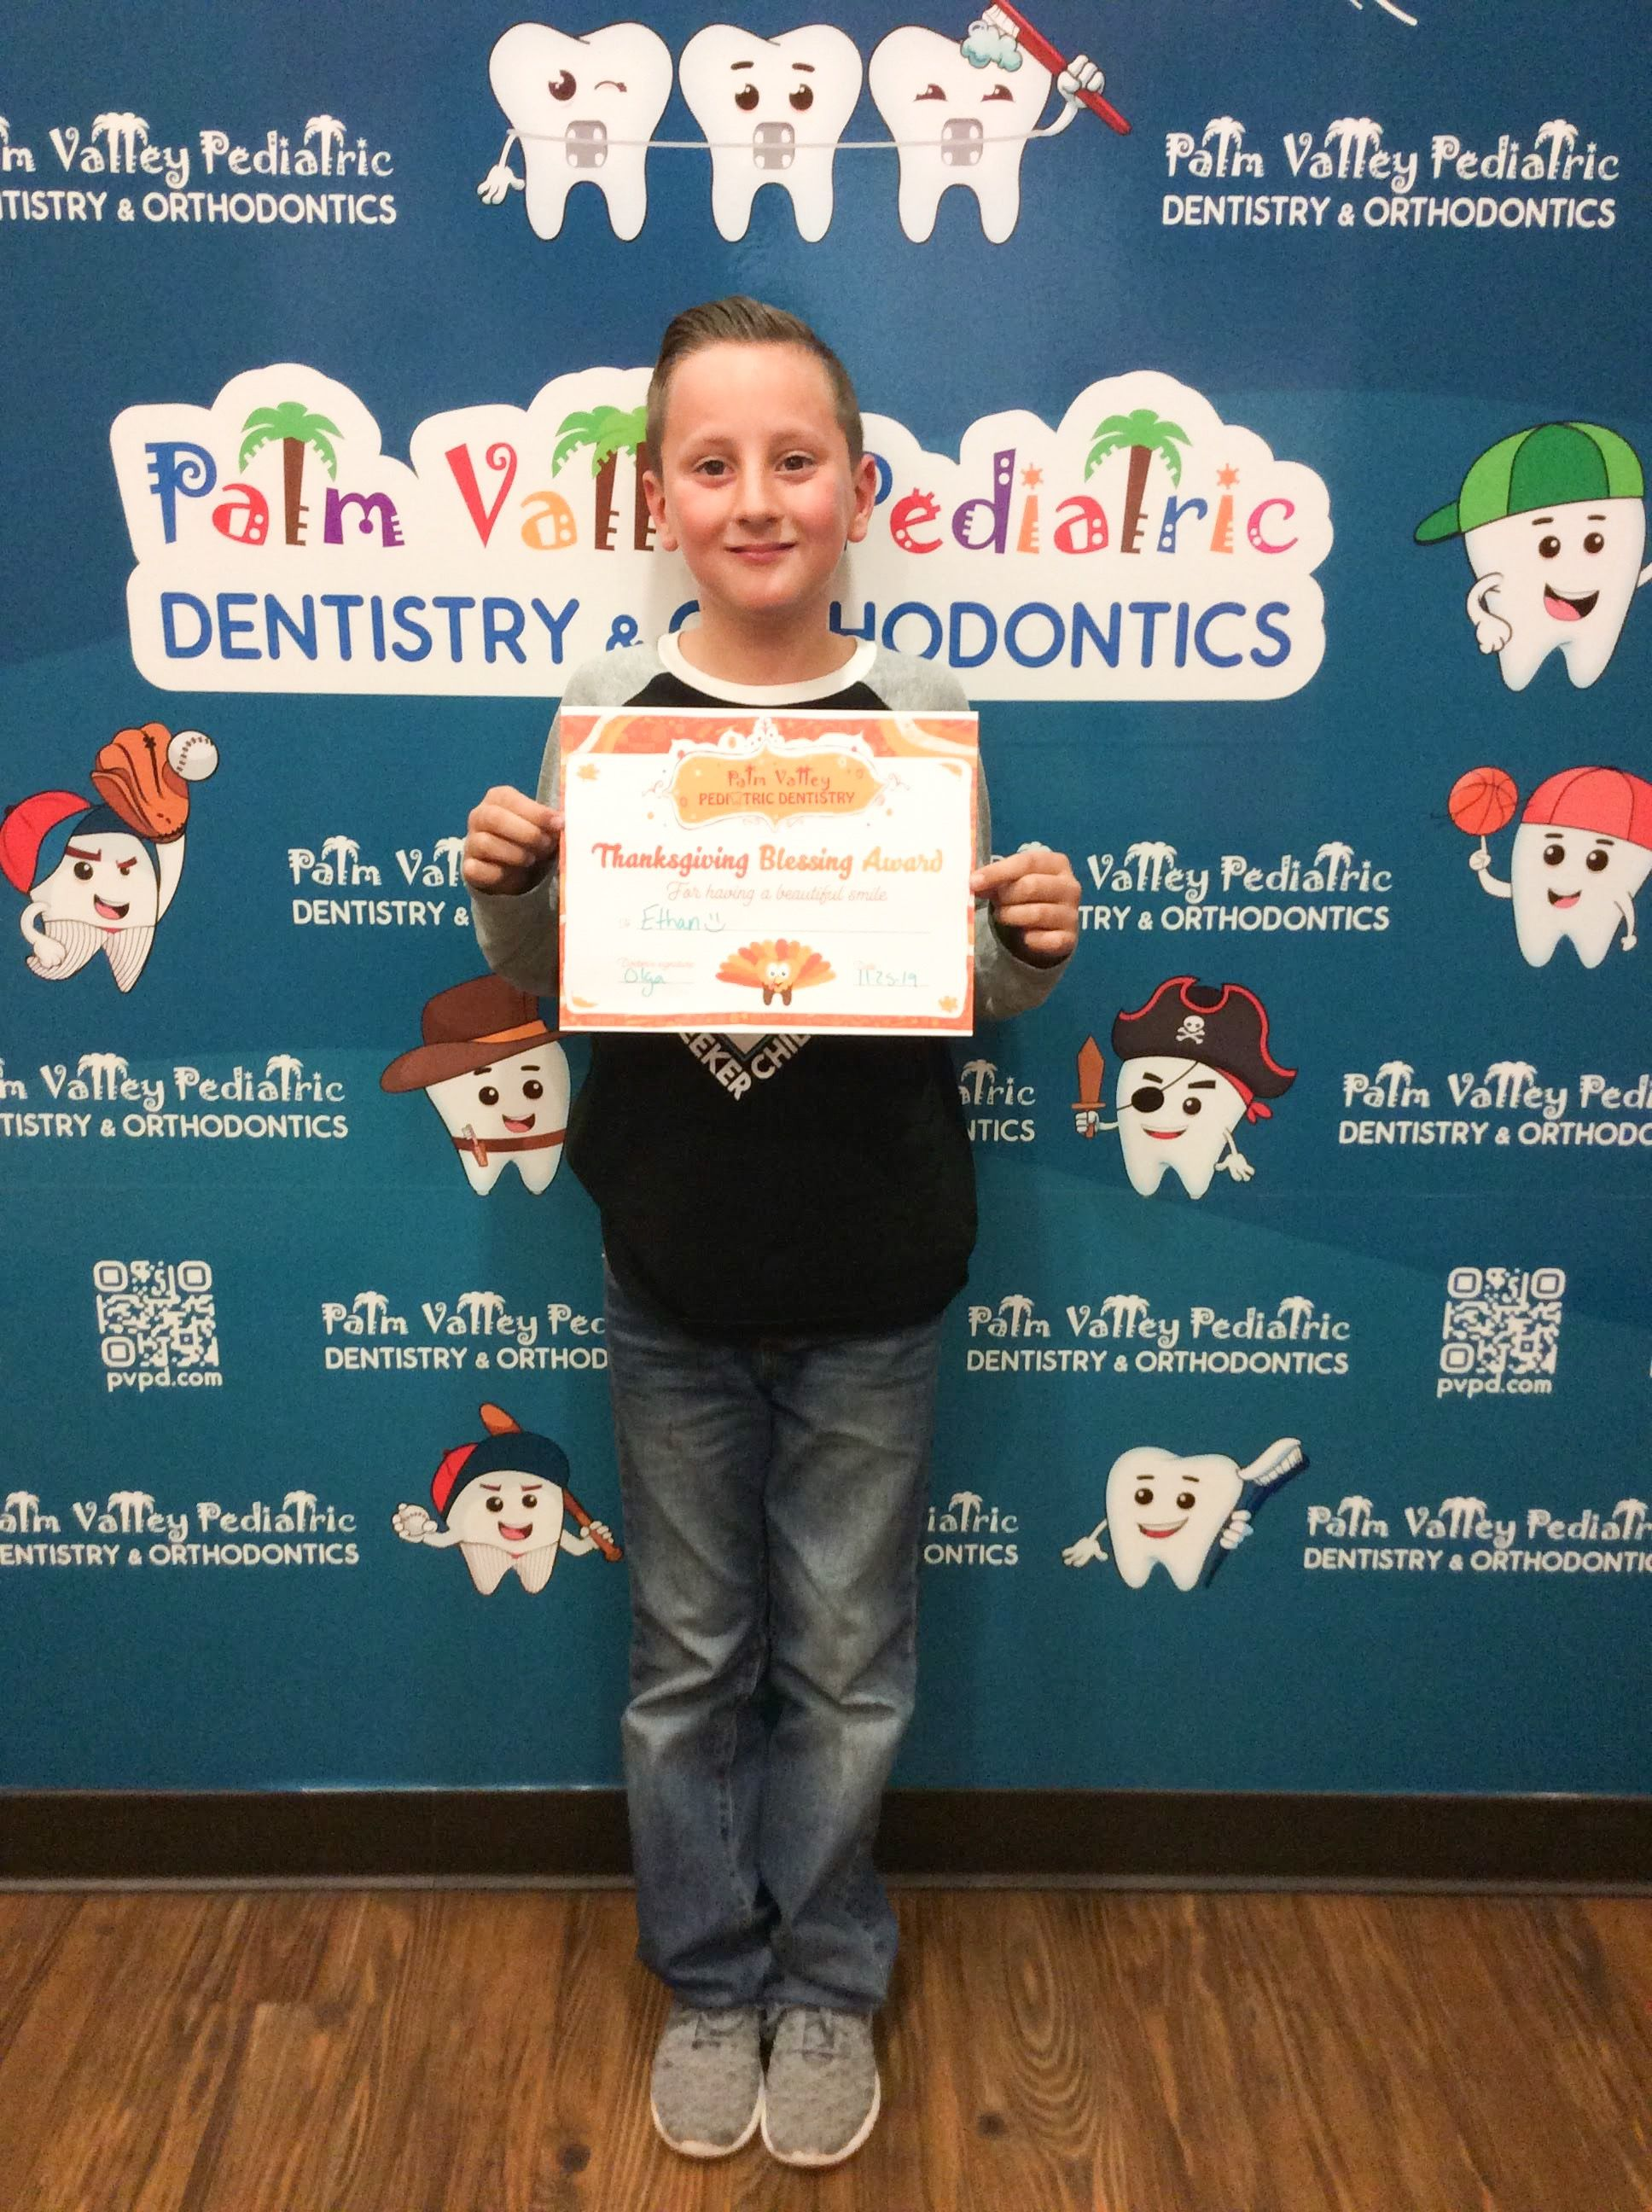 Palm valley pediatric dentistry orthodontics official